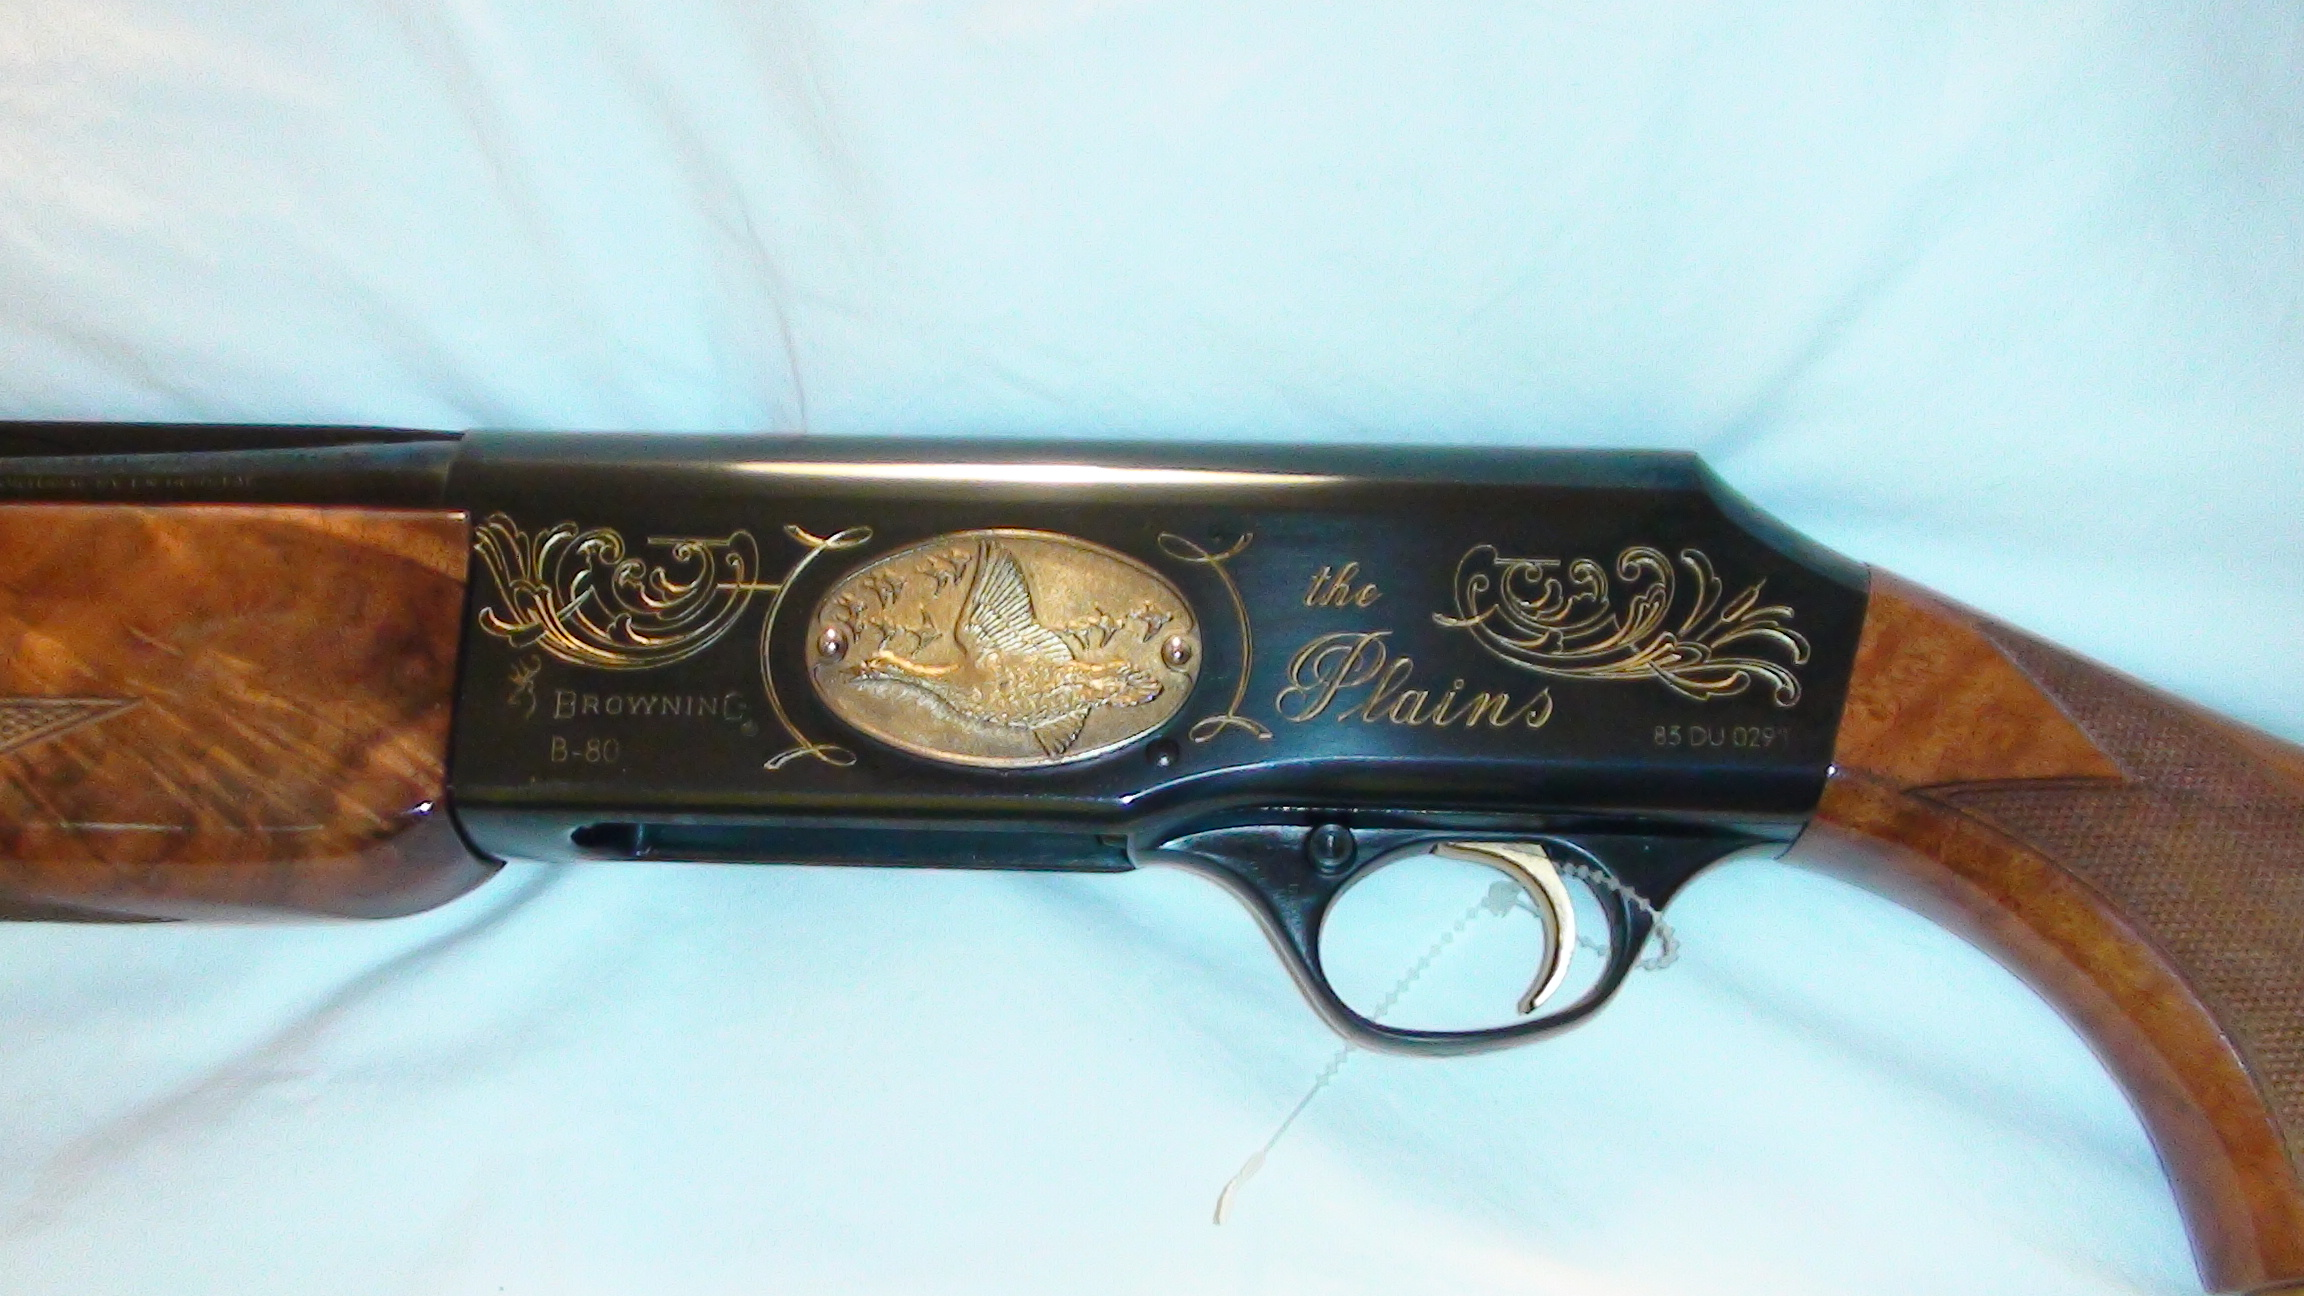 BROWNING DUCKS UNLIMITED B-80 12 SEMI AUTO